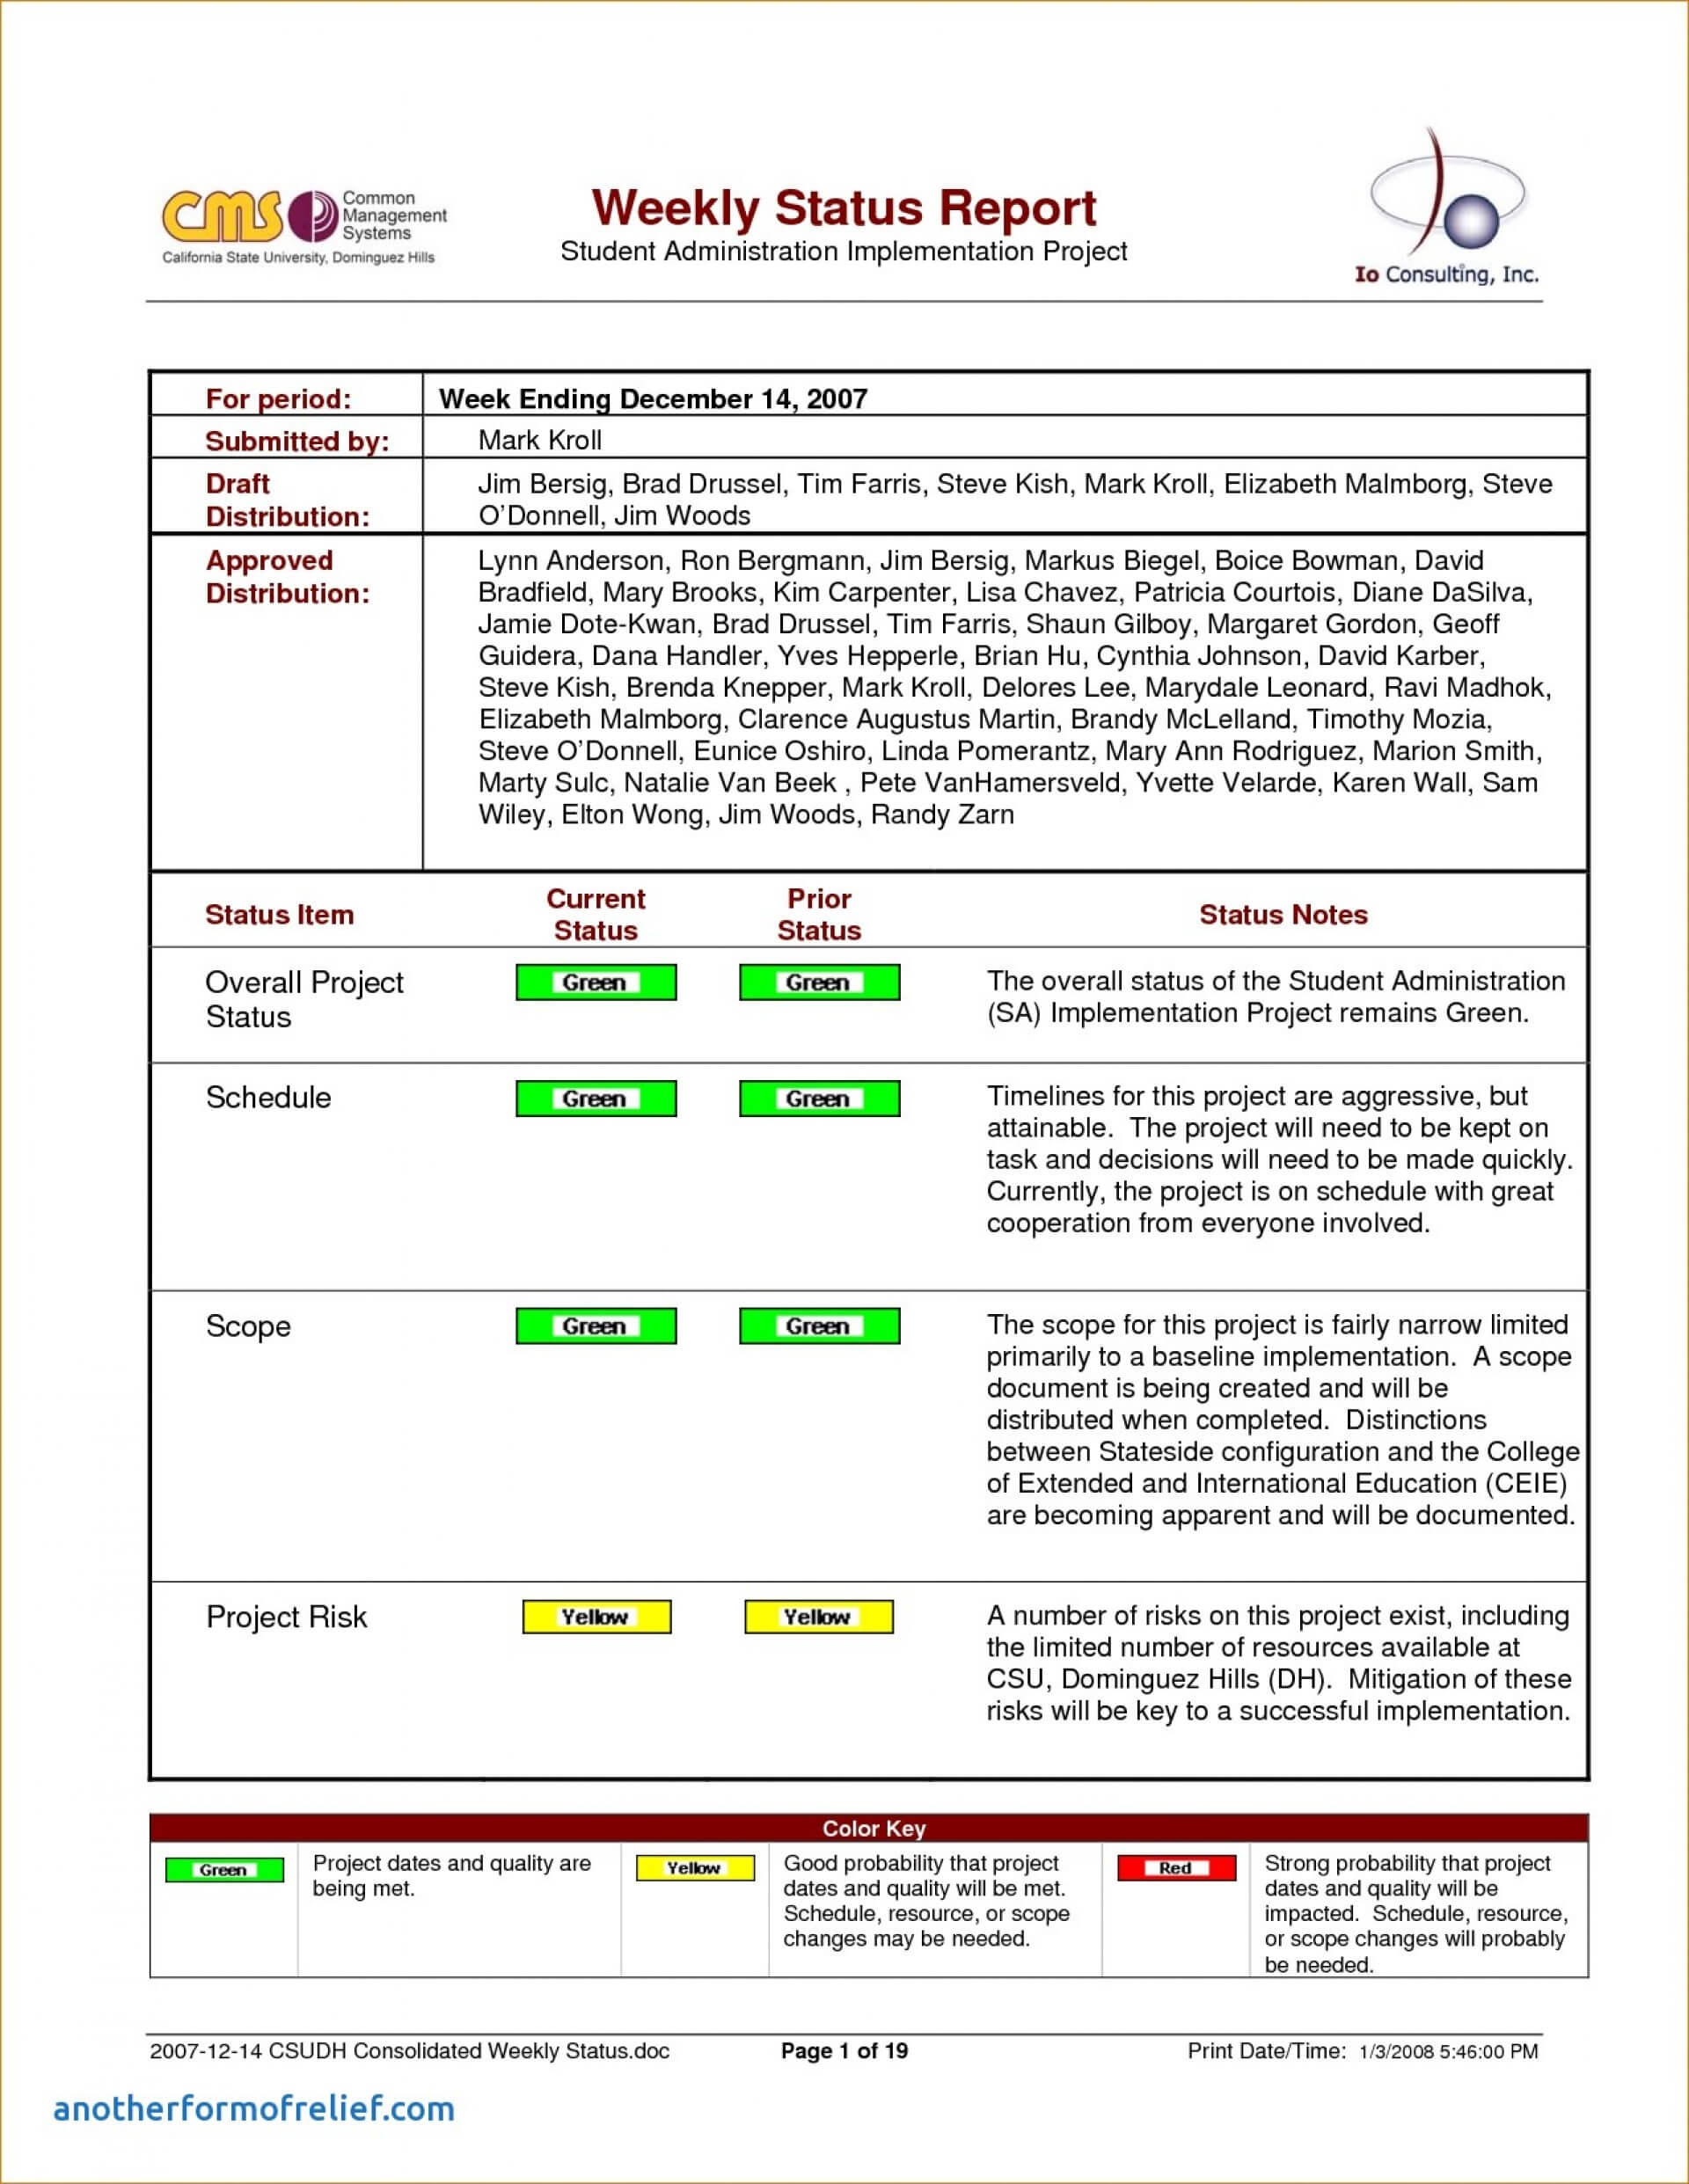 014 Weekly Status Report Template Impressive Ideas Project For Project Implementation Report Template